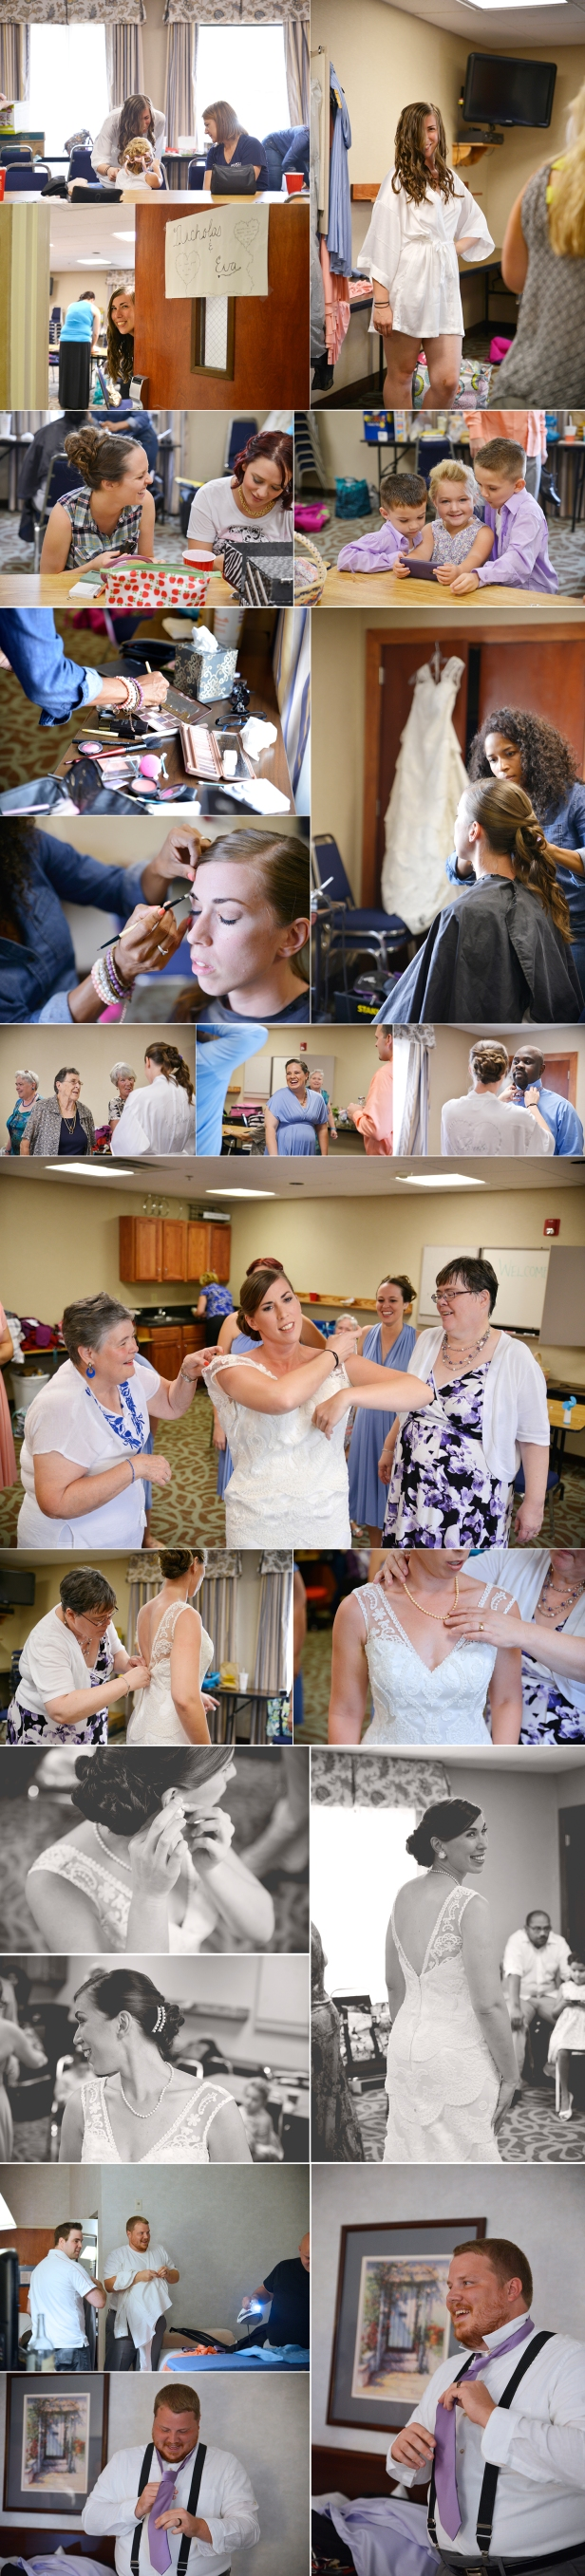 1 Lancaster Ohio wedding photography